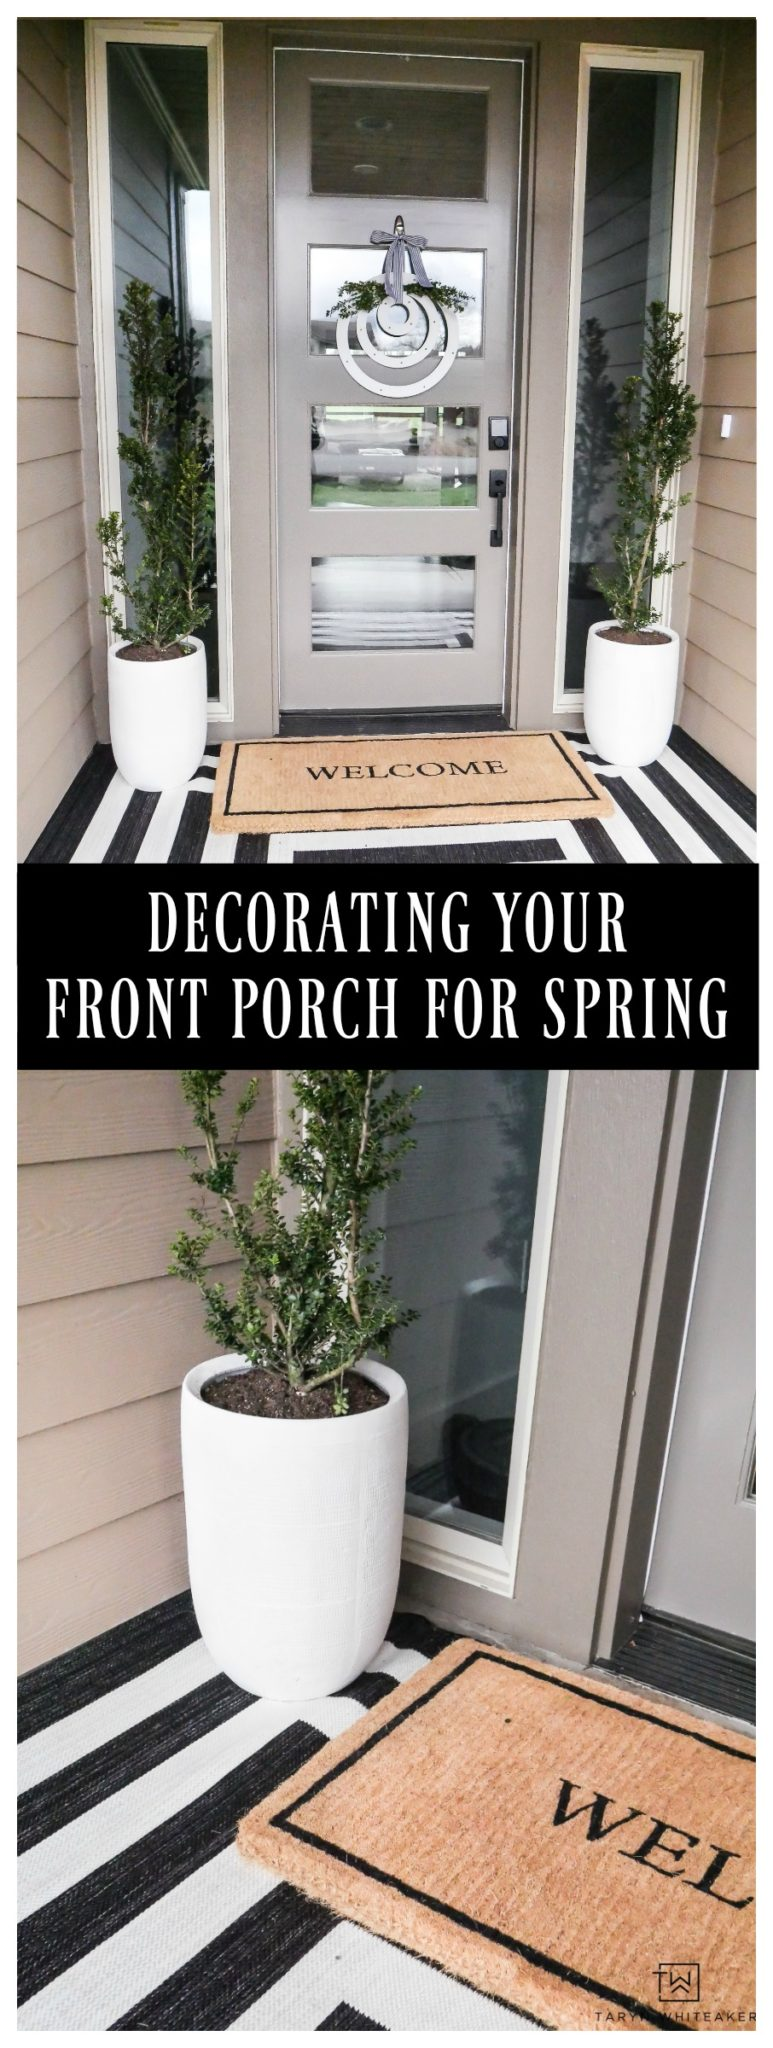 Get your porch ready for spring! Taryn shares her tips for decorating a front porch and reveals her modern spring porch decor! The black and white outdoor rug makes such a statement!